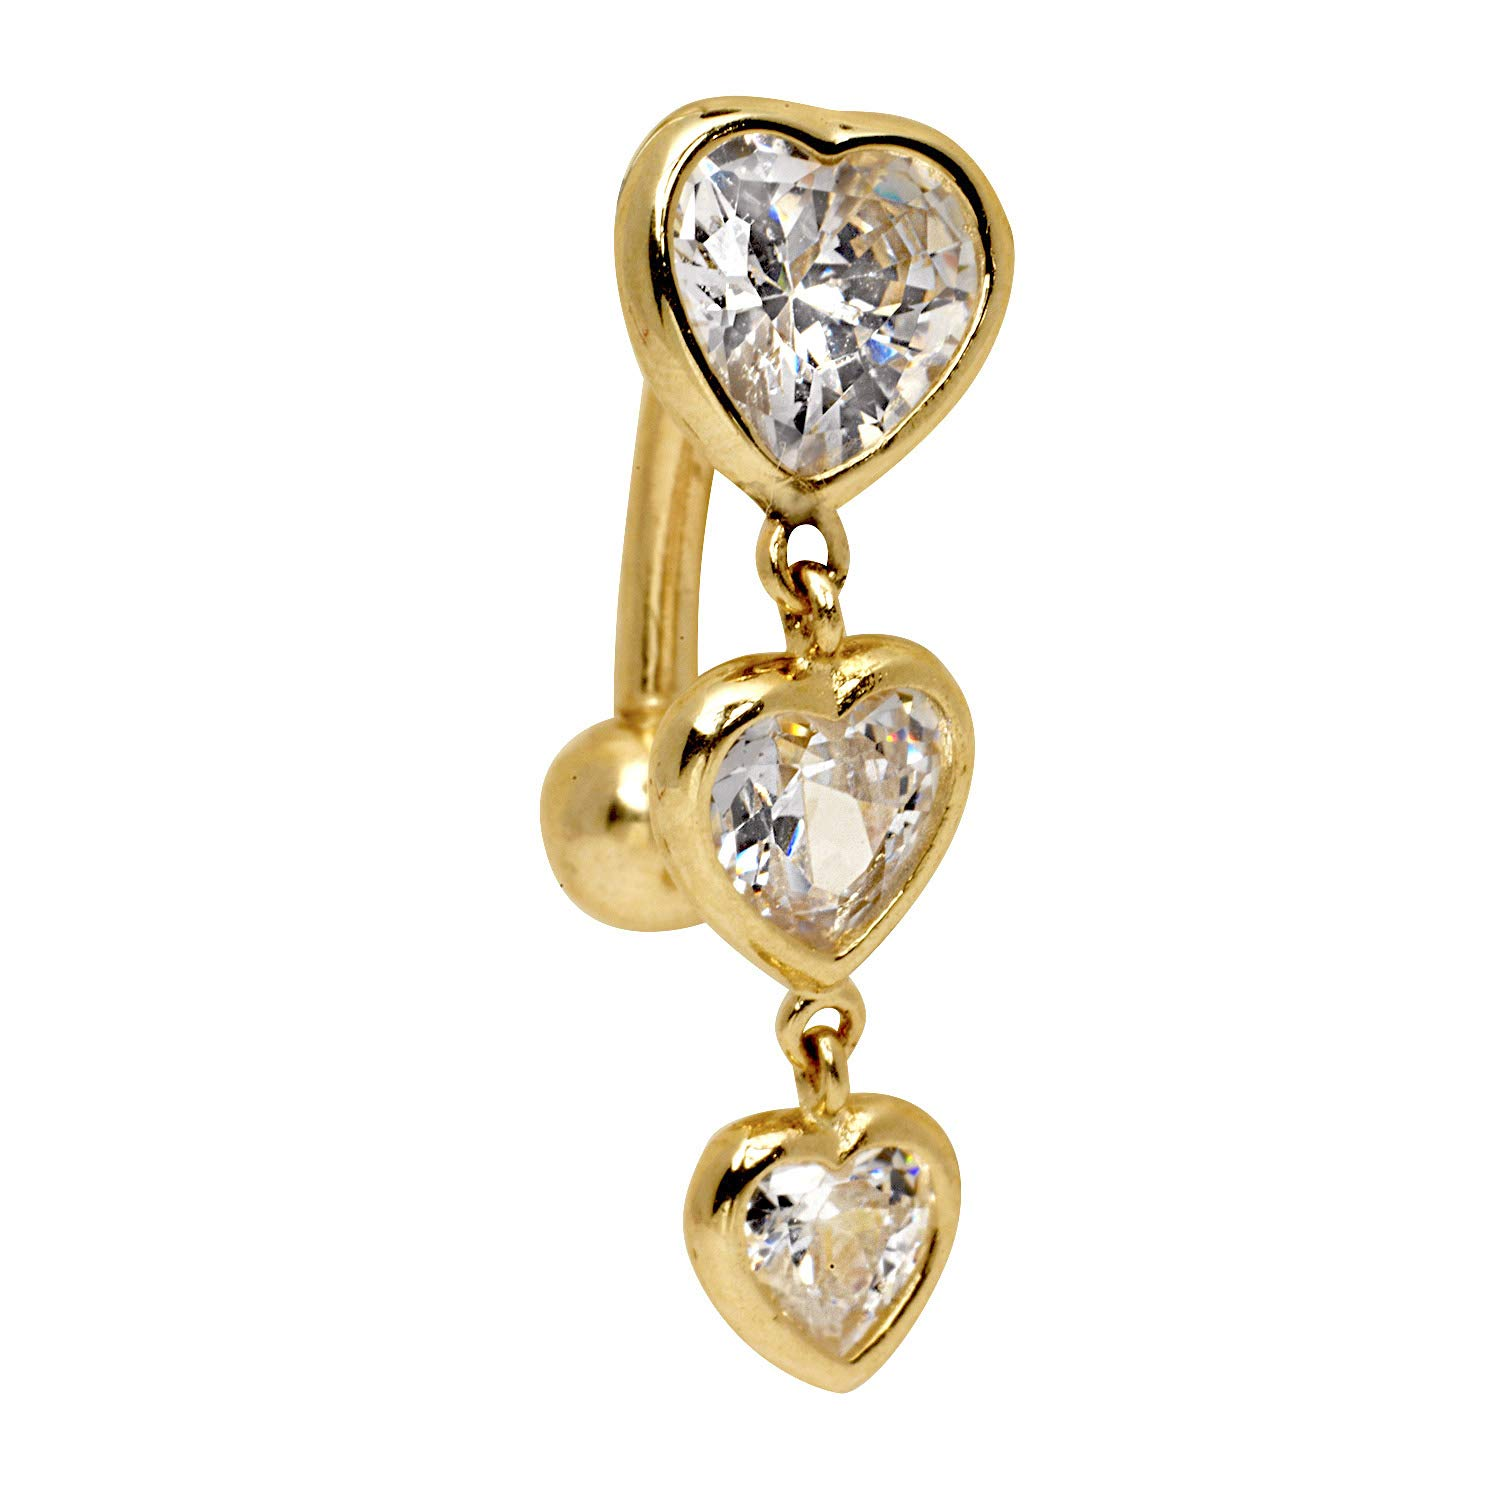 JewelryWeb Solid 14k Yellow or White Gold Graduated Heart Cubic Zirconia Top Mount Belly Button Ring Dangle (7mm x 24mm) (Yellow-Gold) by JewelryWeb